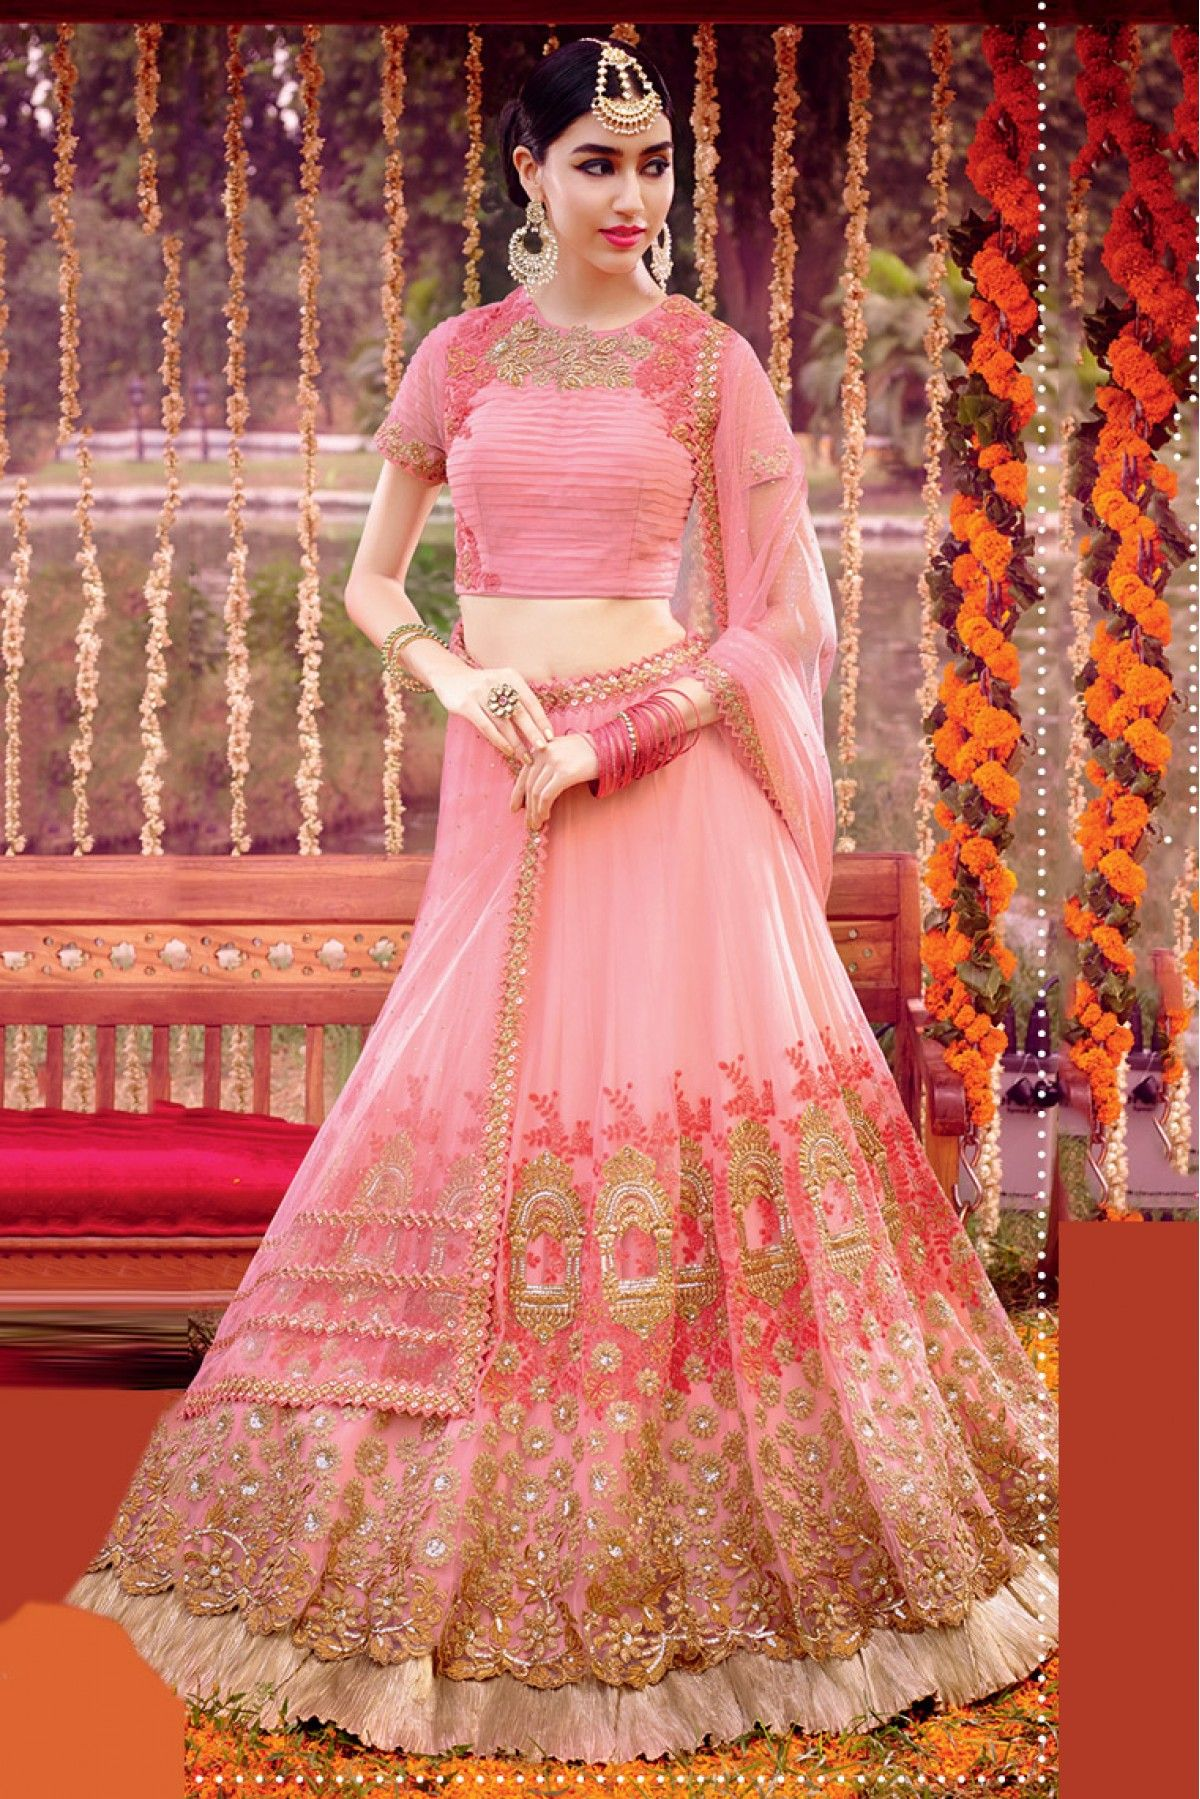 d5a123bc26 Online Shopping In India. Net Semi Stitched Lehenga Choli In Baby Pink  Colour